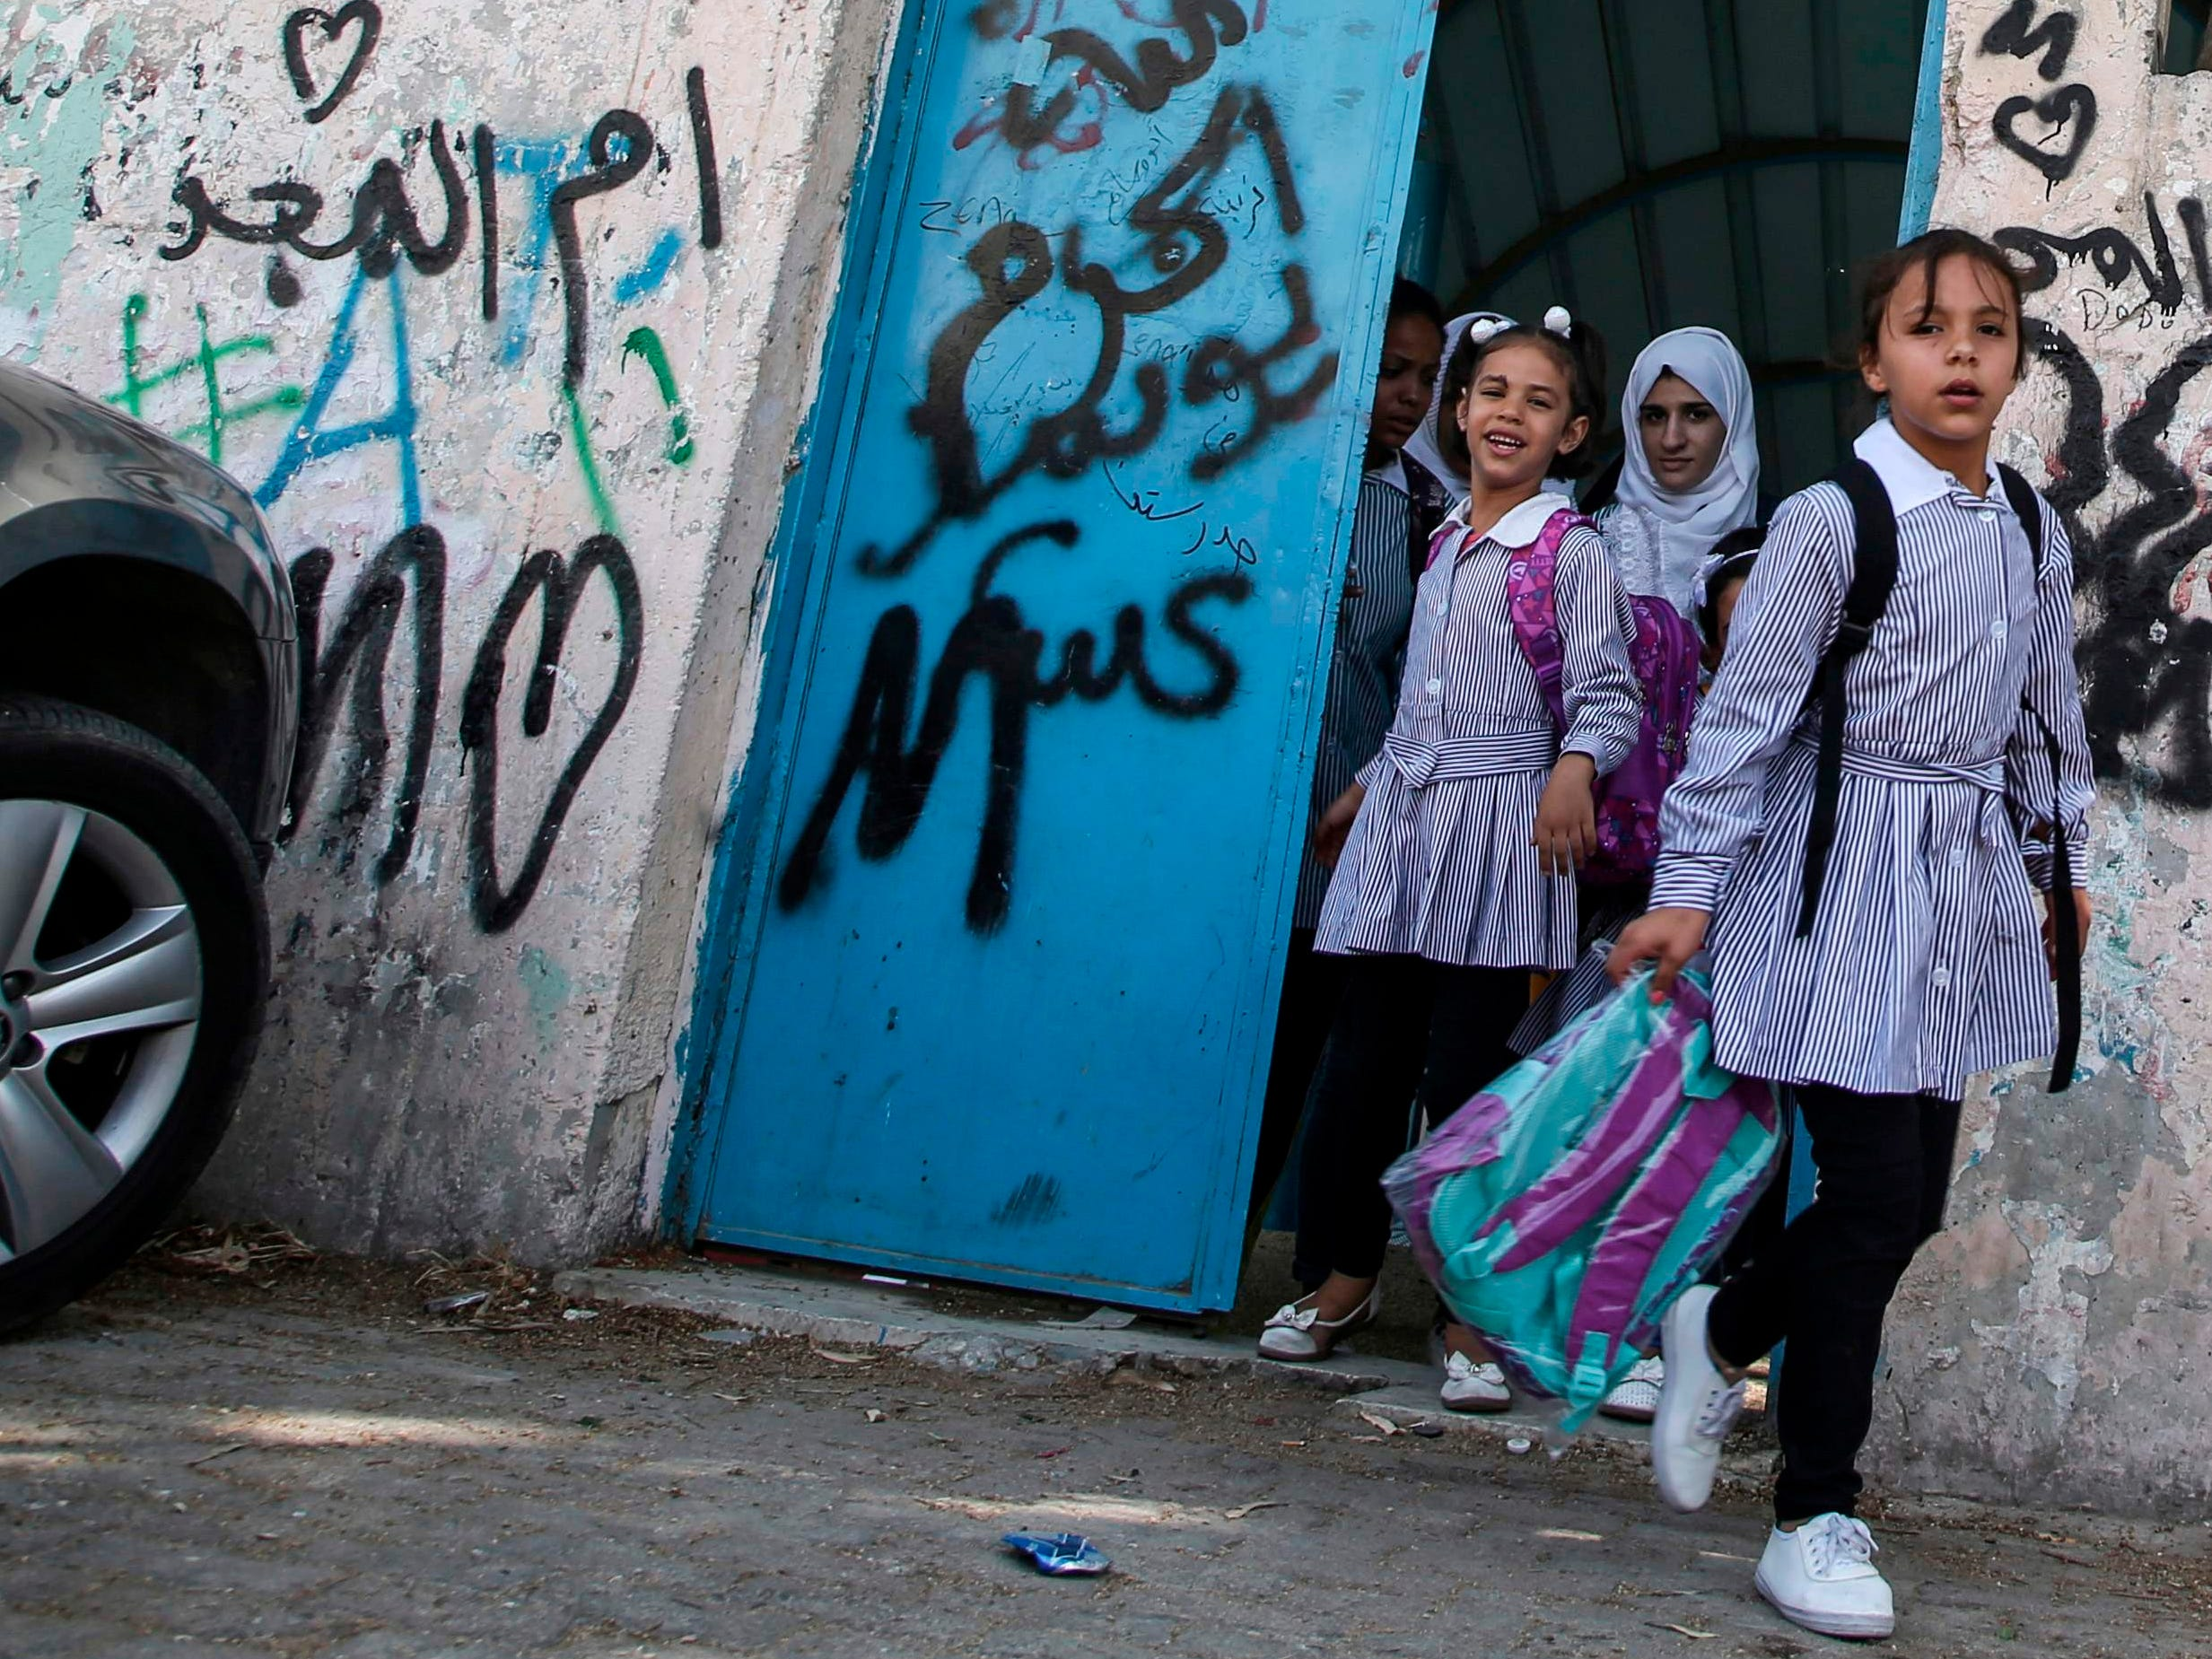 "Palestinian girls exit from a school run by the United nations Relief and Works Agency's (UNRWA, UN agency for Palestinian refugees), in the Askar refugee camp east of Nablus in the occupied West Bank on September 2, 2018. - The United States, the biggest contributor to the UNRWA -- a lifeline for millions of Palestinians for over 70 years, announced on August 31 it was halting its funding to the organisation, which it labelled ""irredeemably flawed"". (Photo by Jaafar ASHTIYEH / AFP)JAAFAR ASHTIYEH/AFP/Getty Images ORIG FILE ID: AFP_18S6VS"